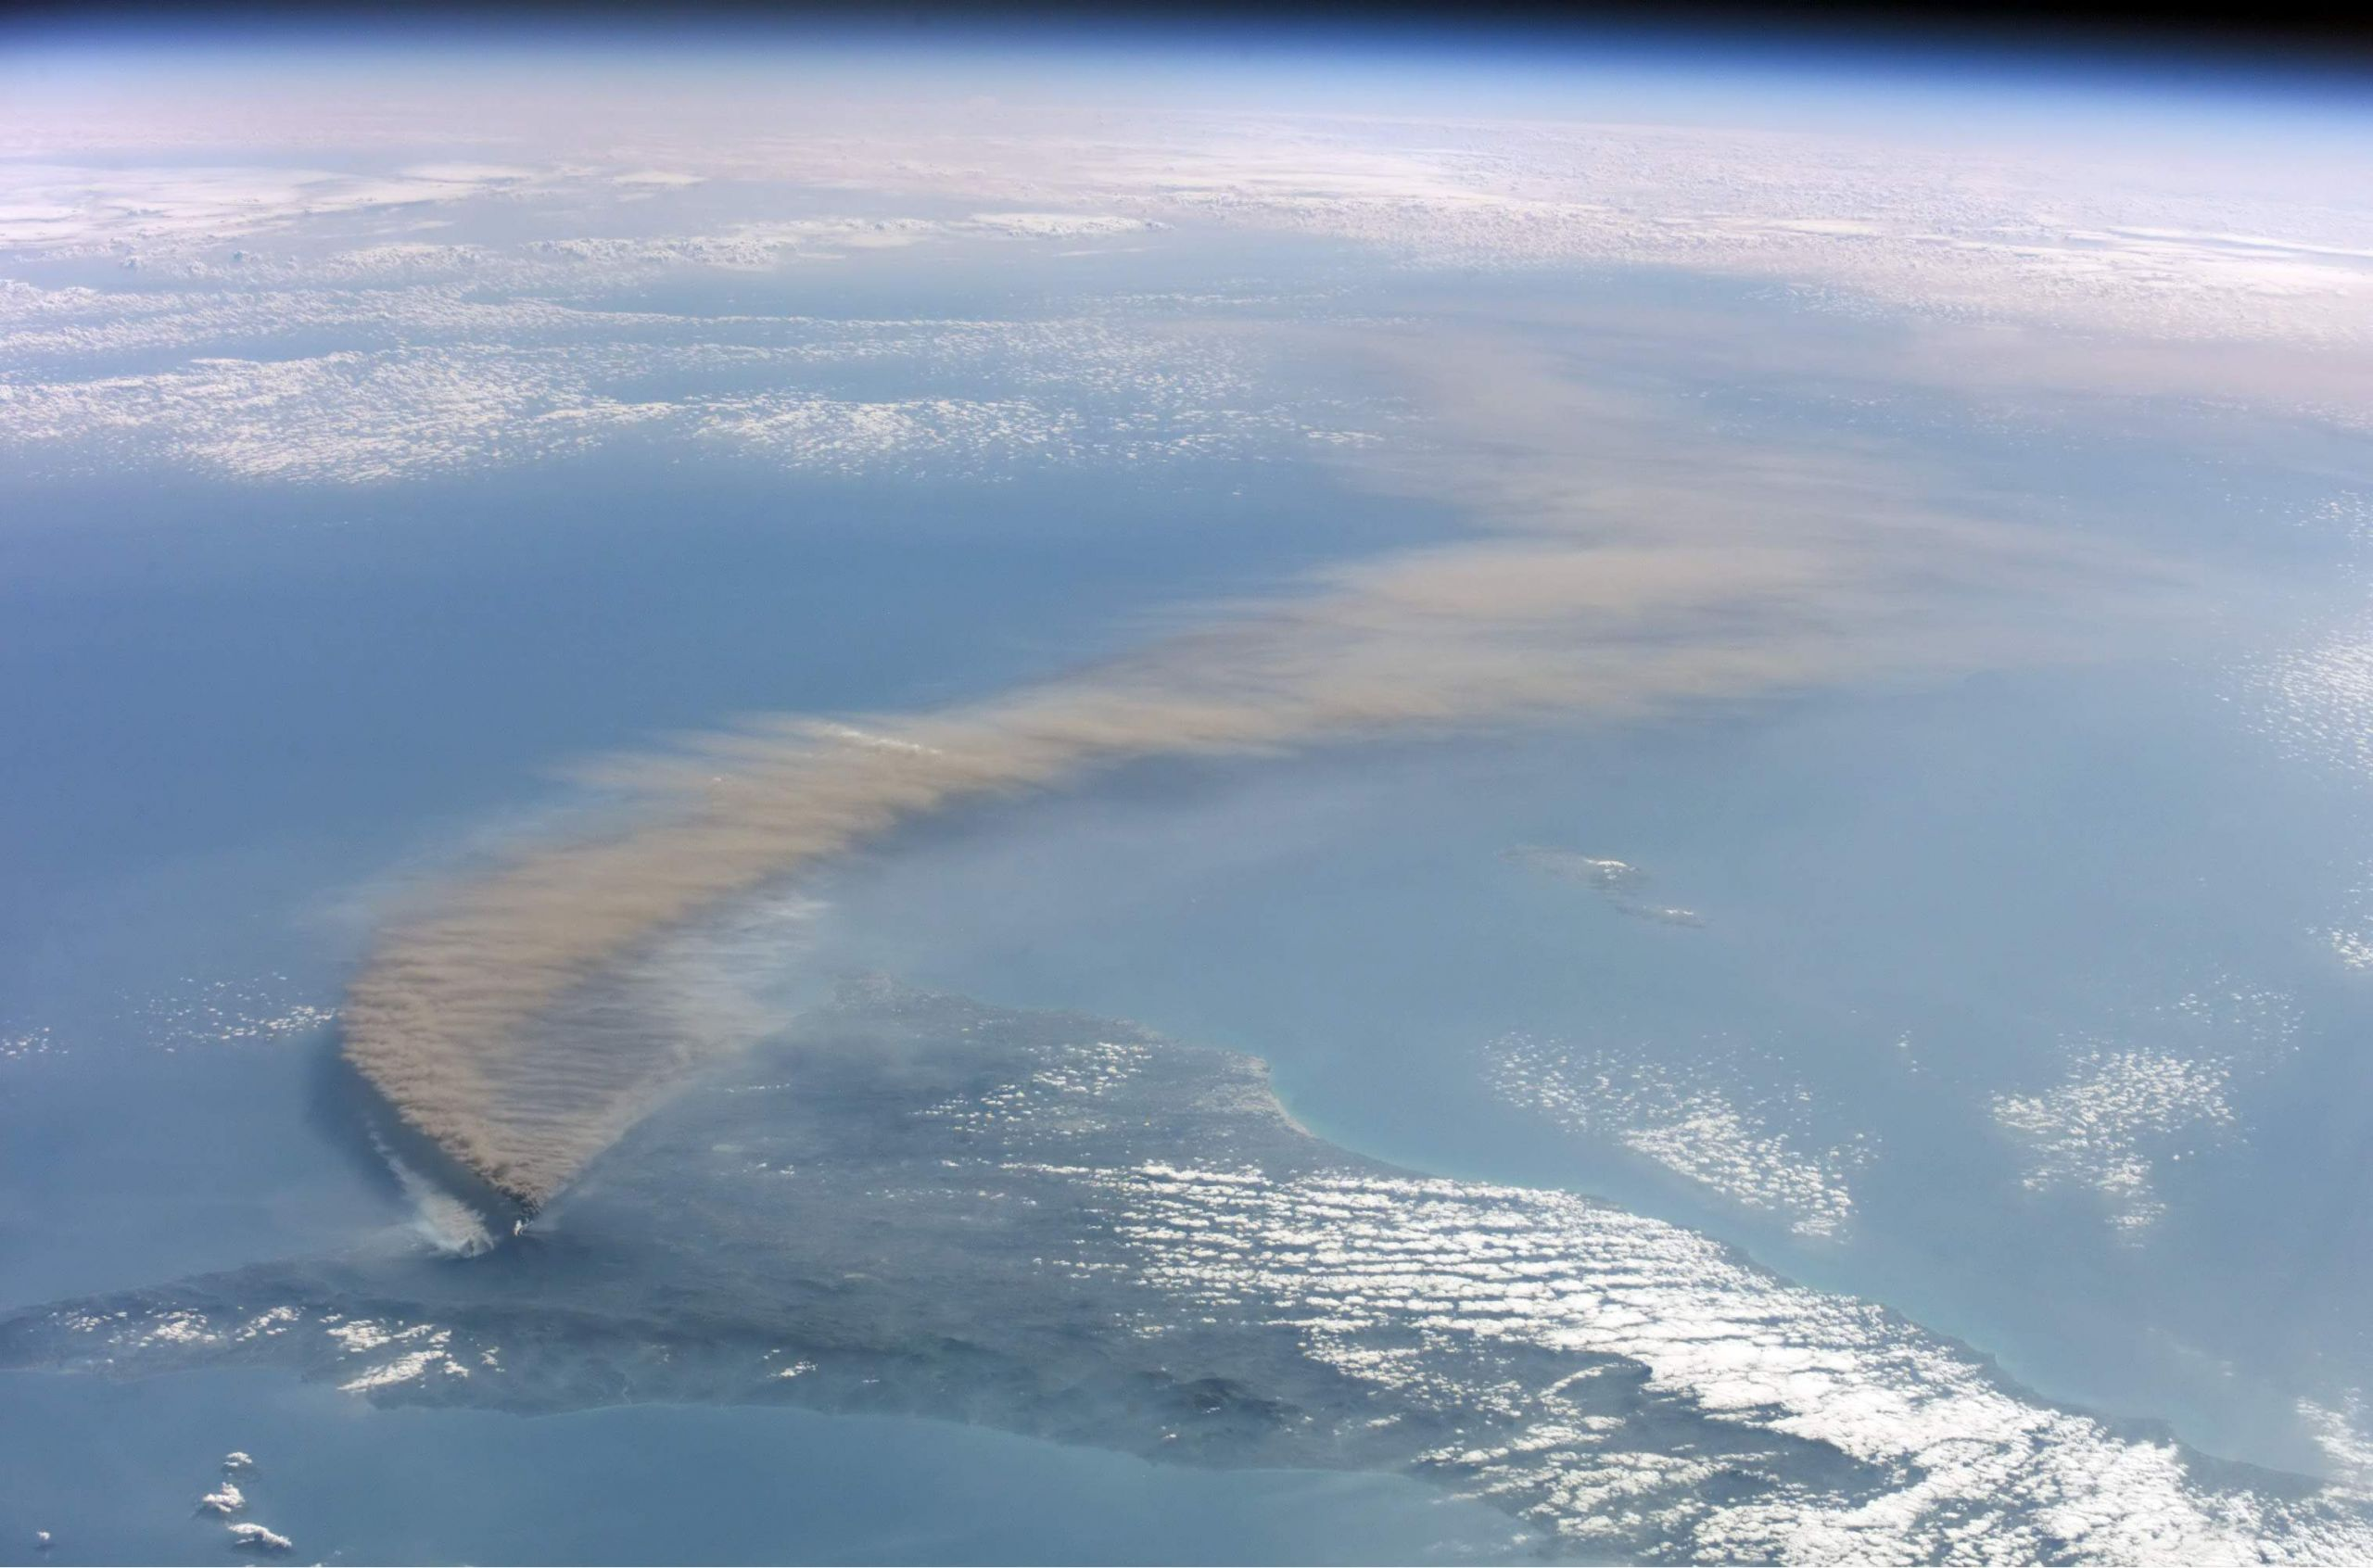 Etna smoke seen from space